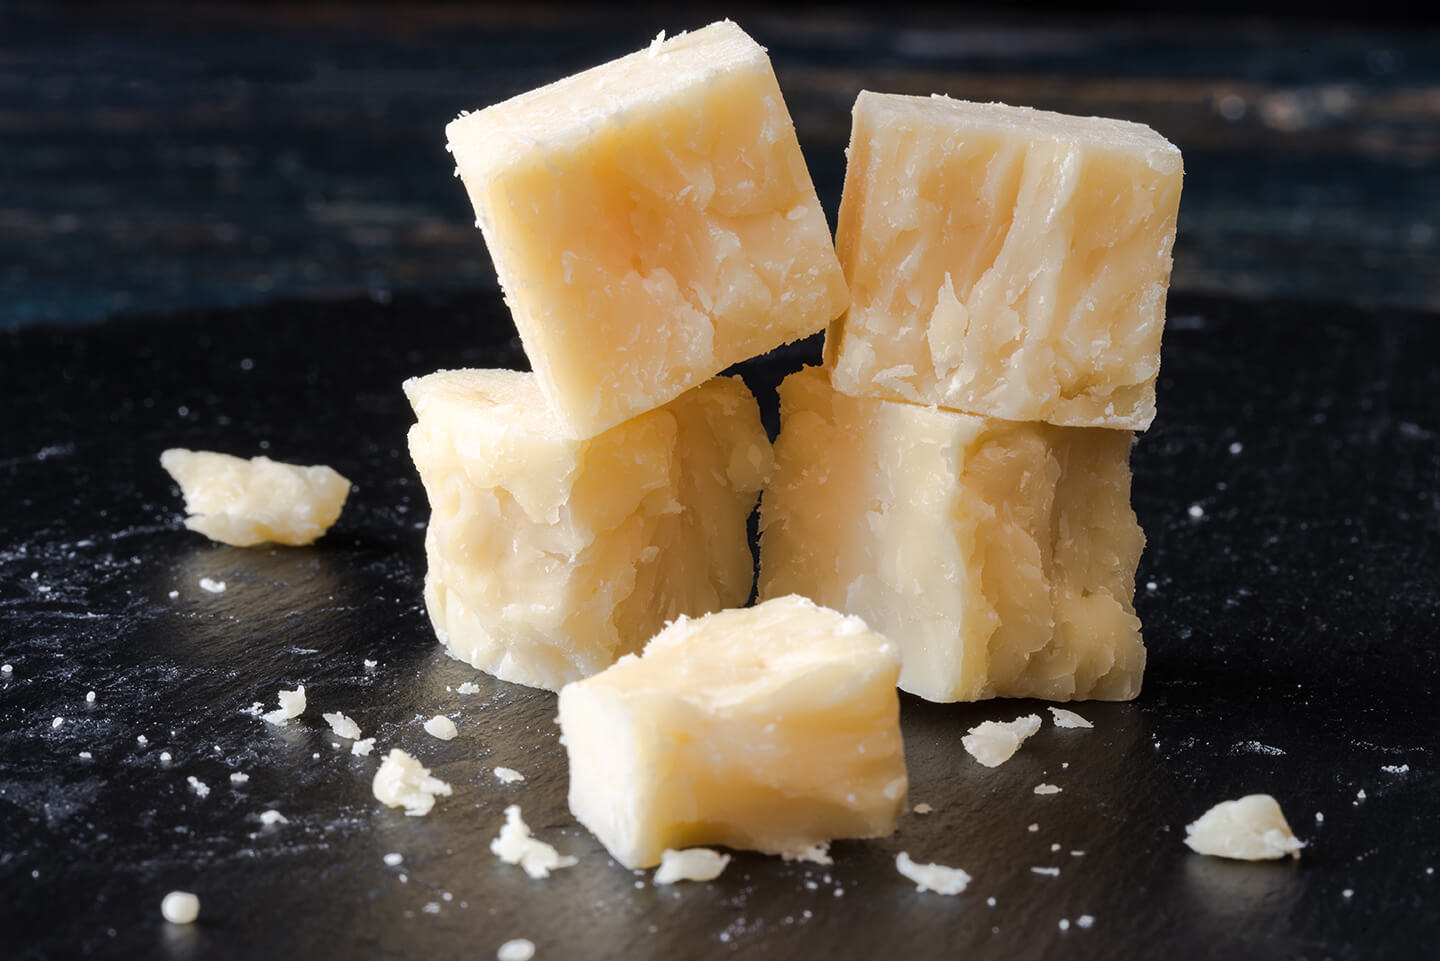 Crumbling cheese cut up into delicate cubes on a dark wooden cutting board.